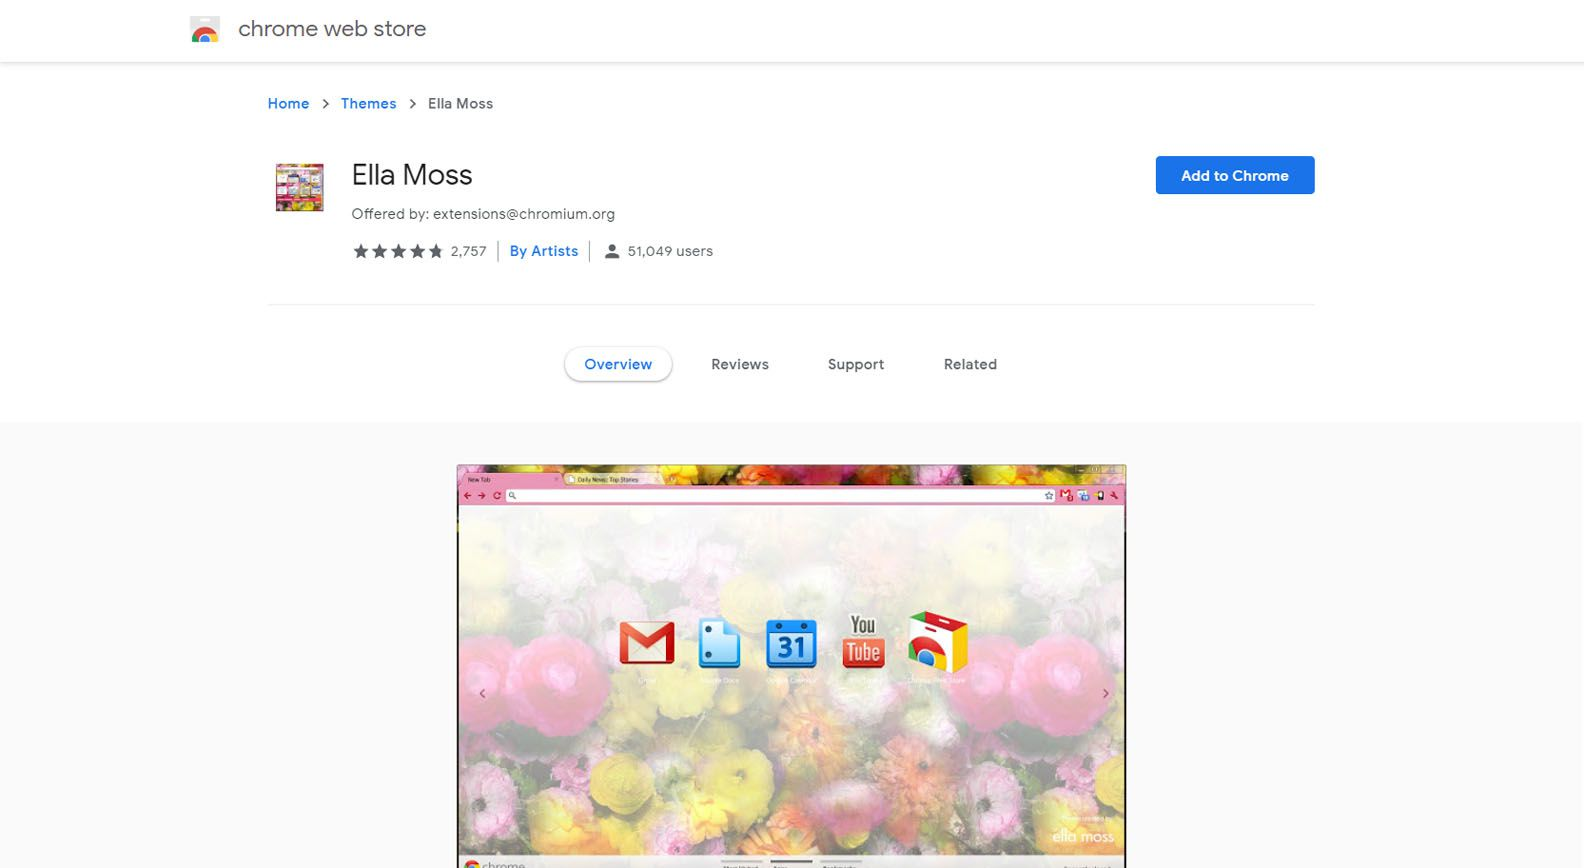 Chrome Web Store with theme selected